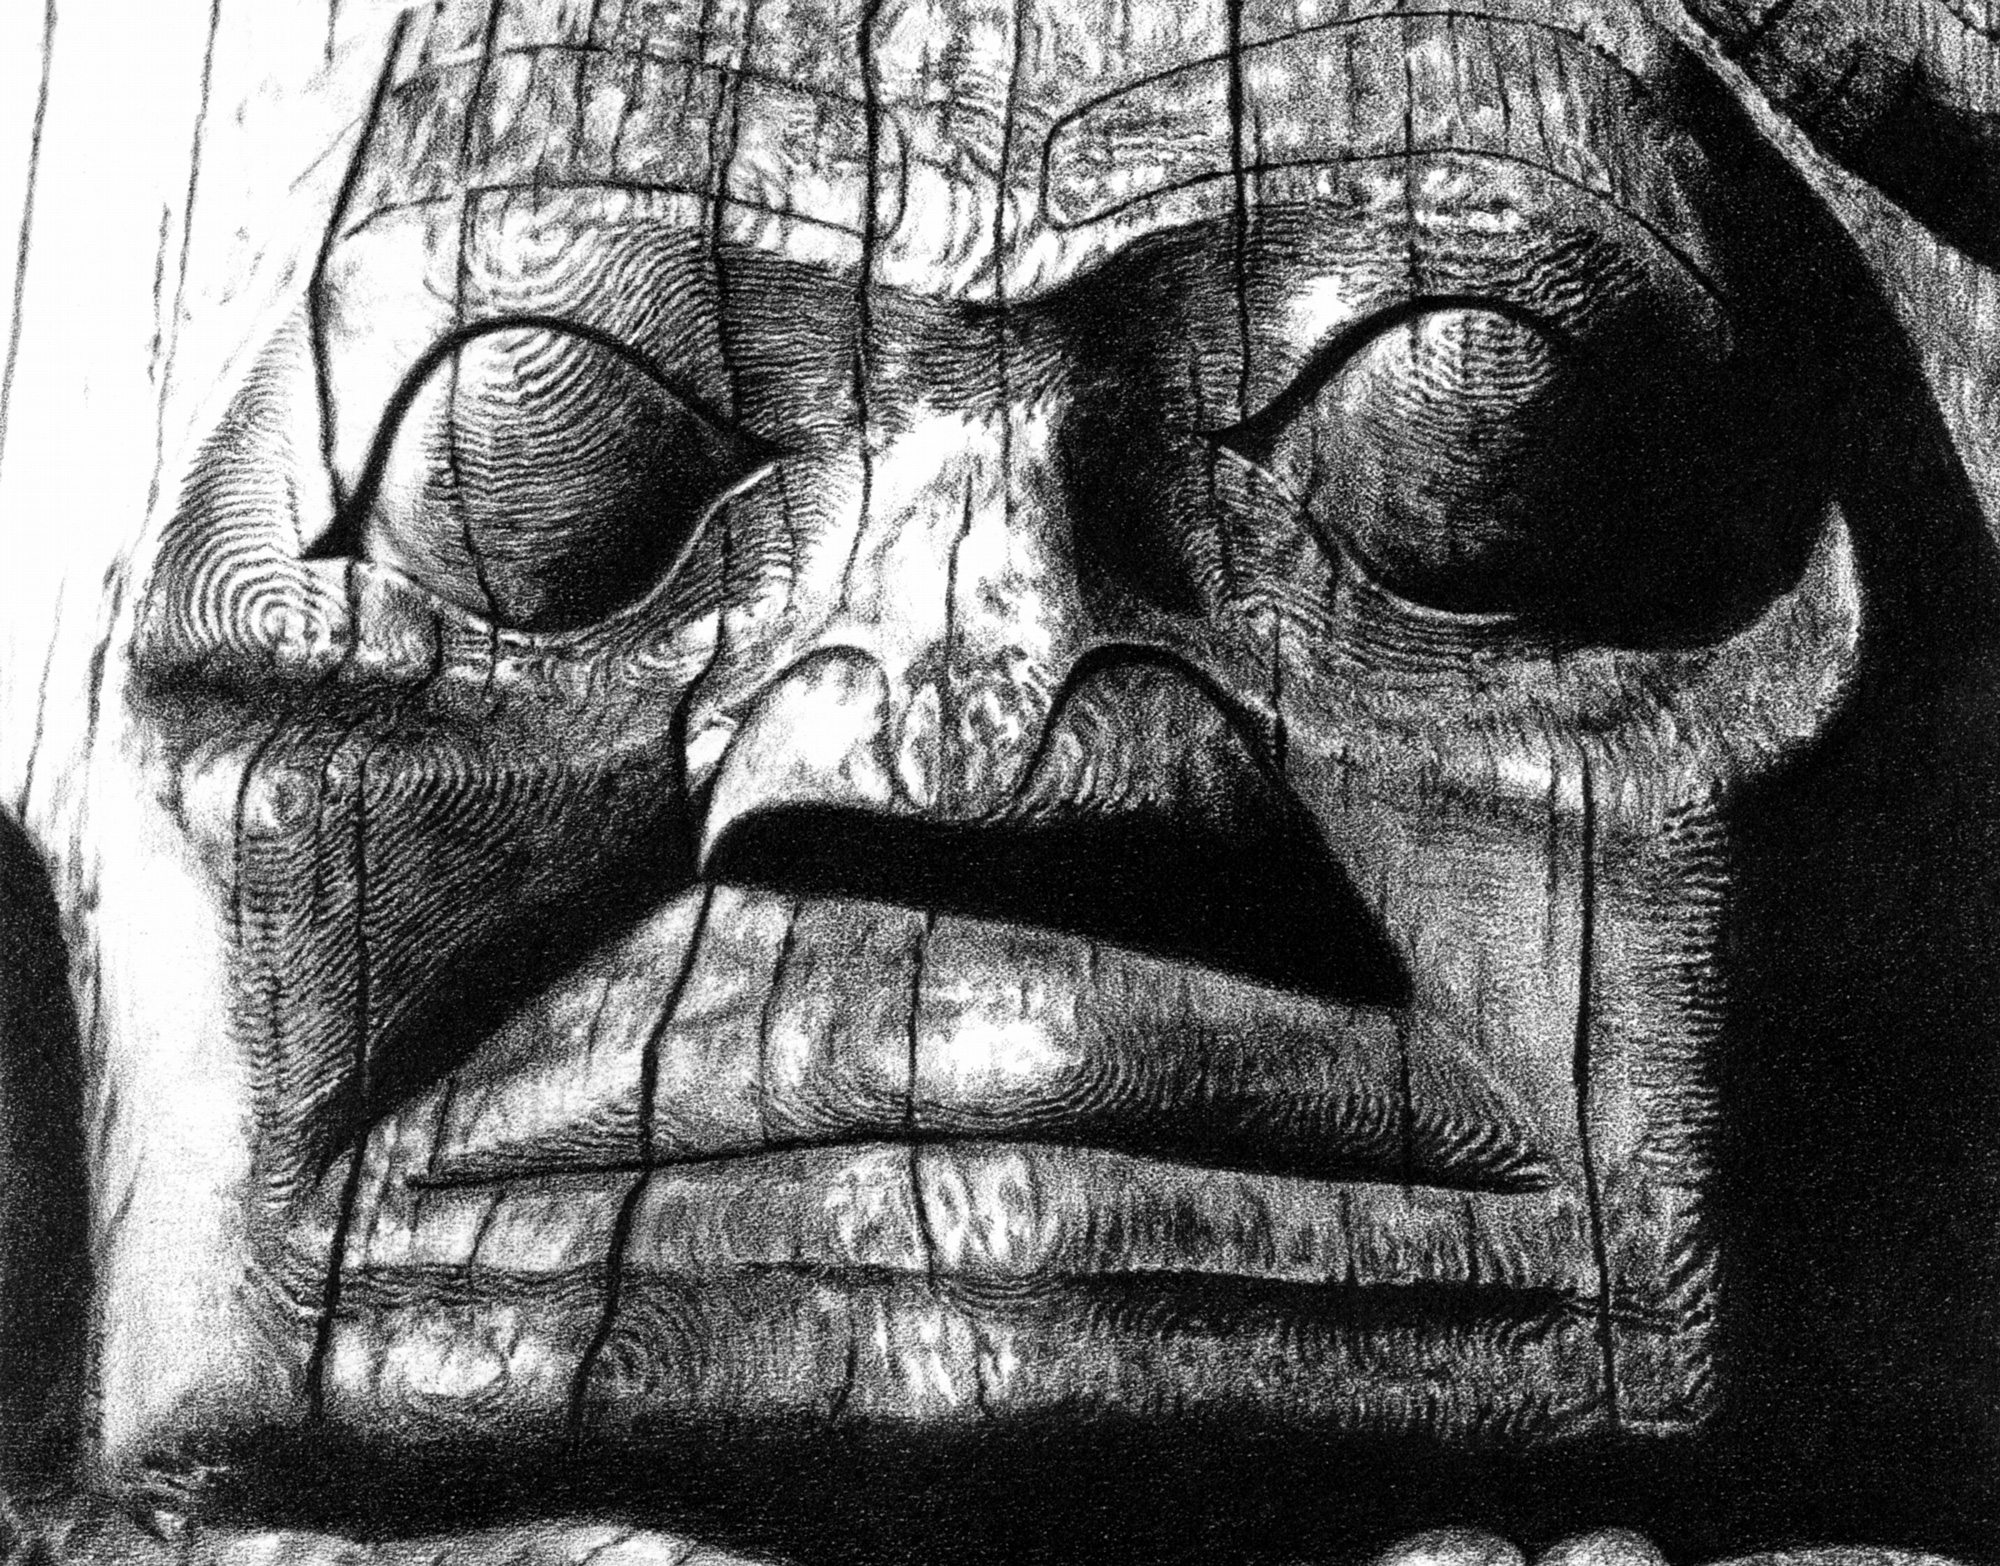 Totem pole face in graphite